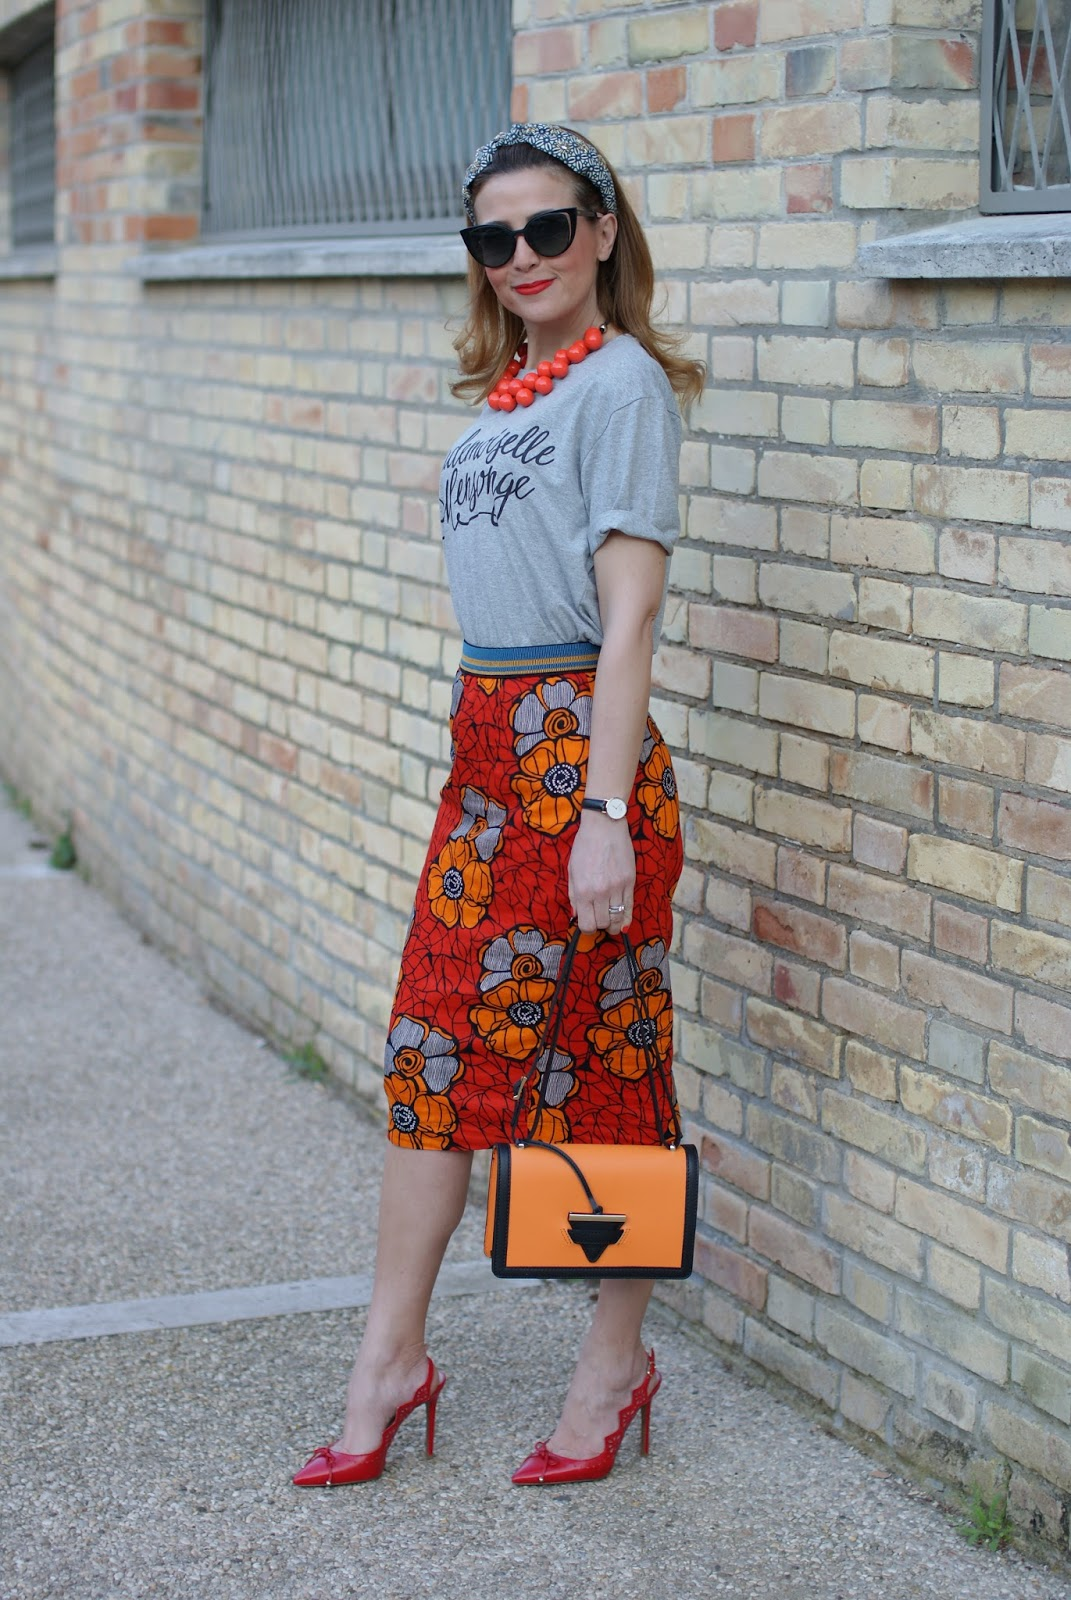 89lies street style, Eightynine Lies t-shirt with Rose a Pois ethnic pencil skirt on Fashion and Cookies fashion blog, fashion blogger style